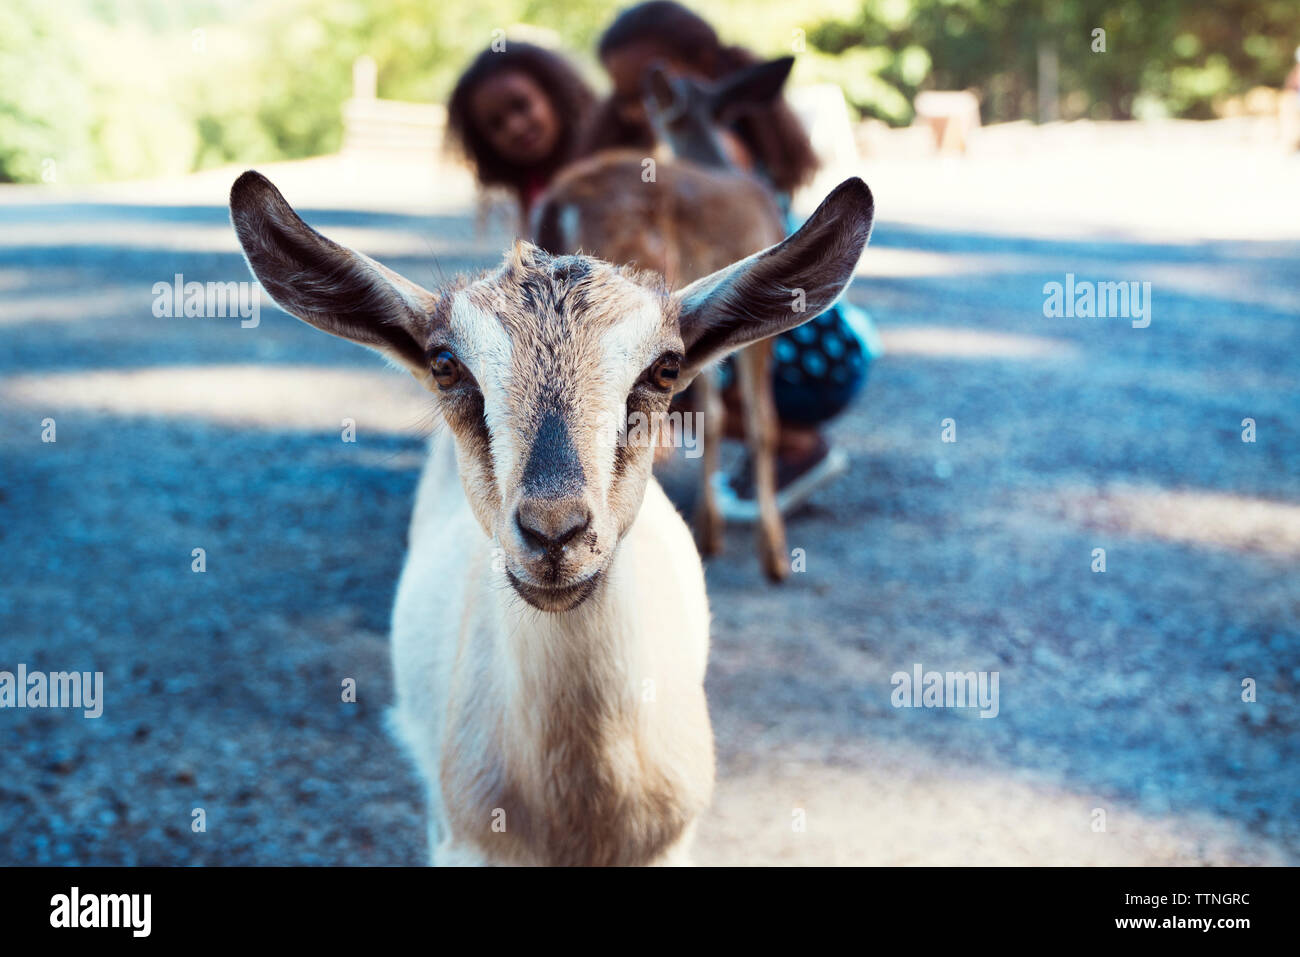 Portrait of kid goat while girls crouching on footpath in background - Stock Image